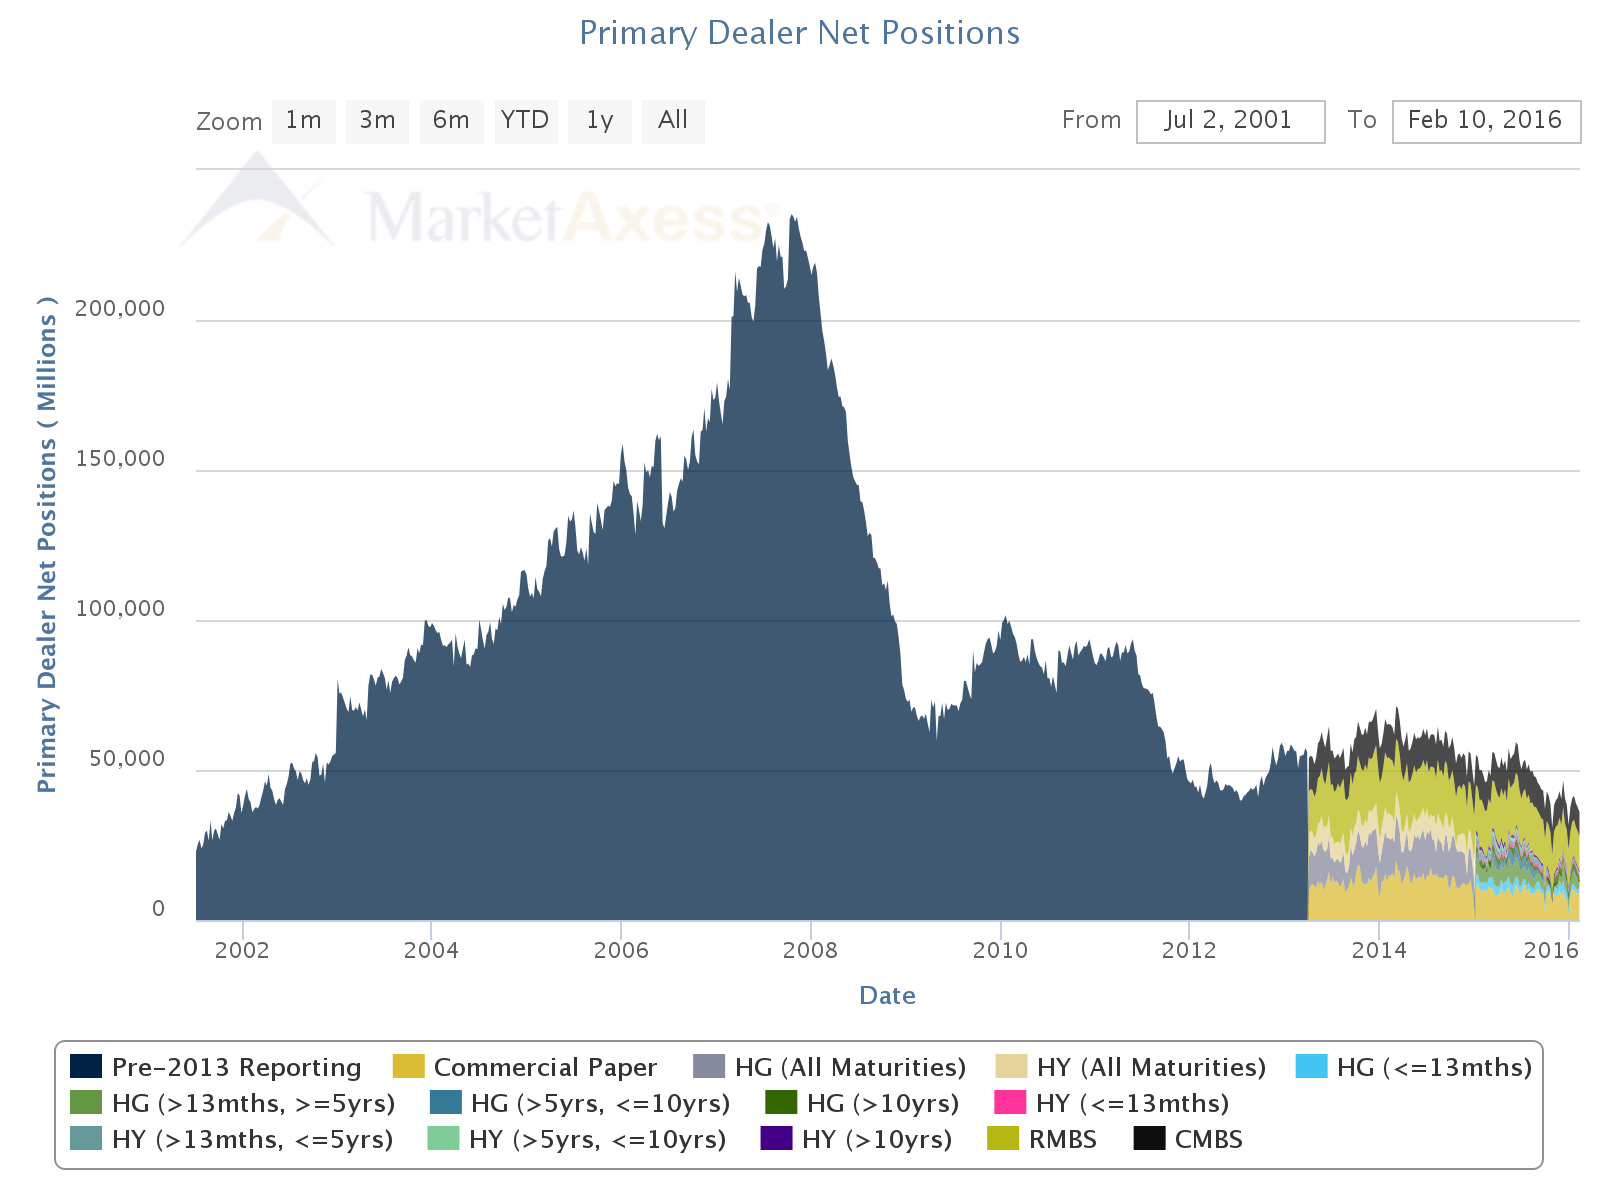 Primary Dealer Net Positions (2006 to 2016) Source: MarketAxess